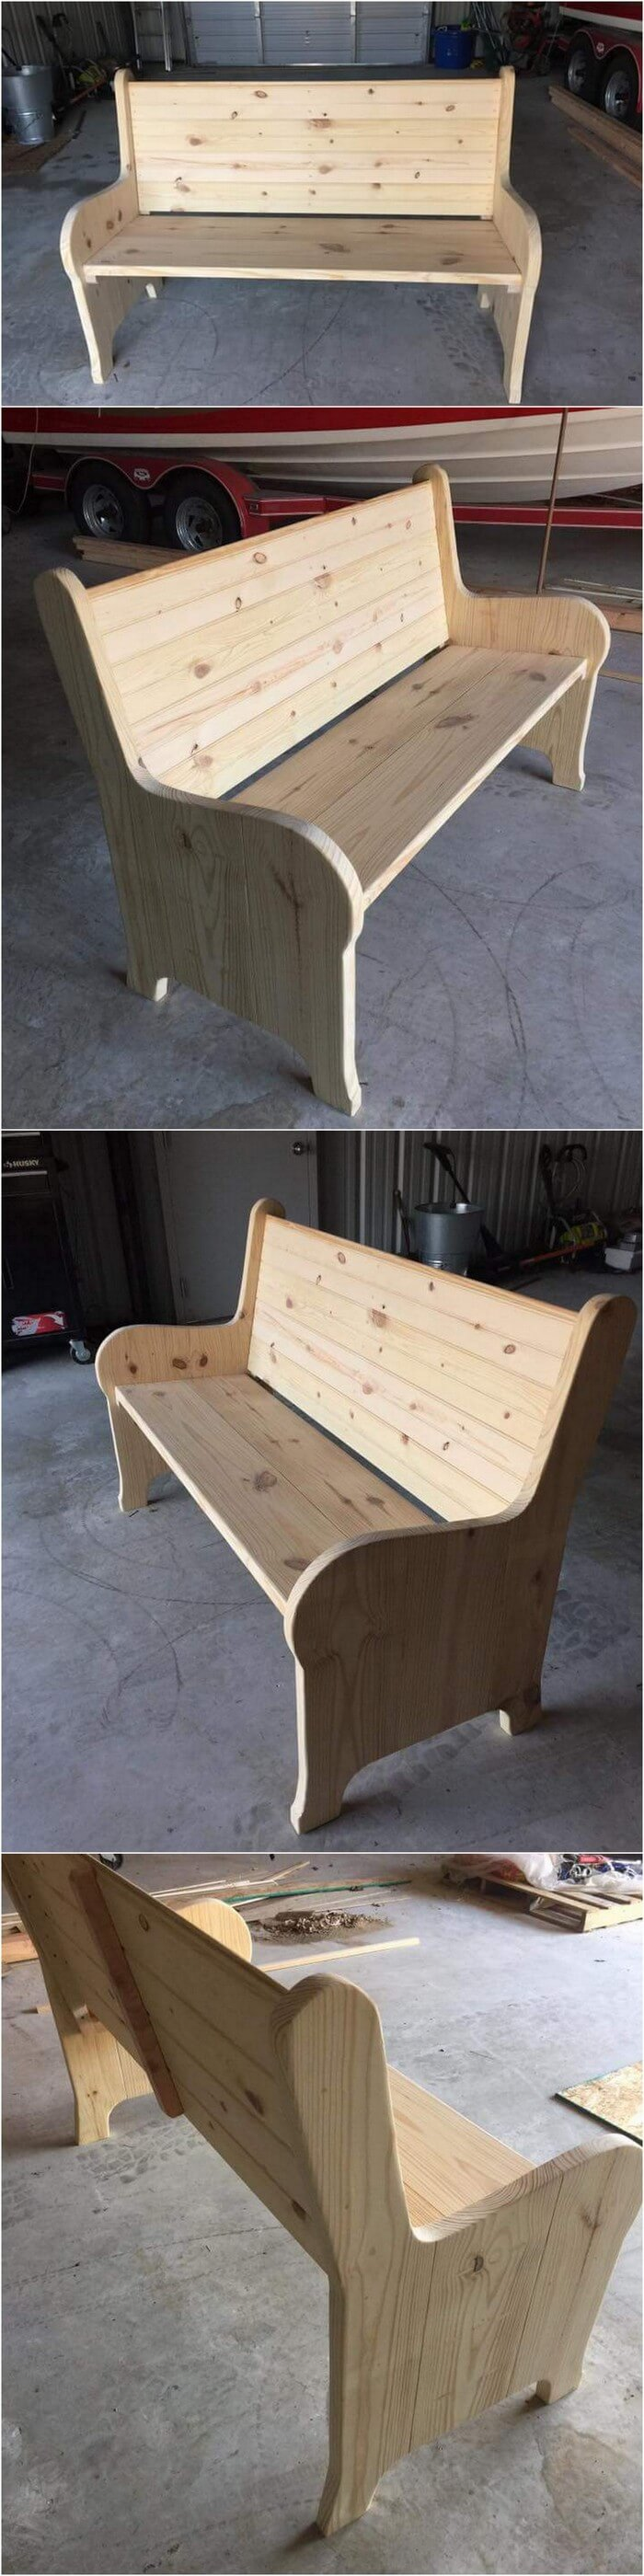 DIY- Pallet banch-Projects